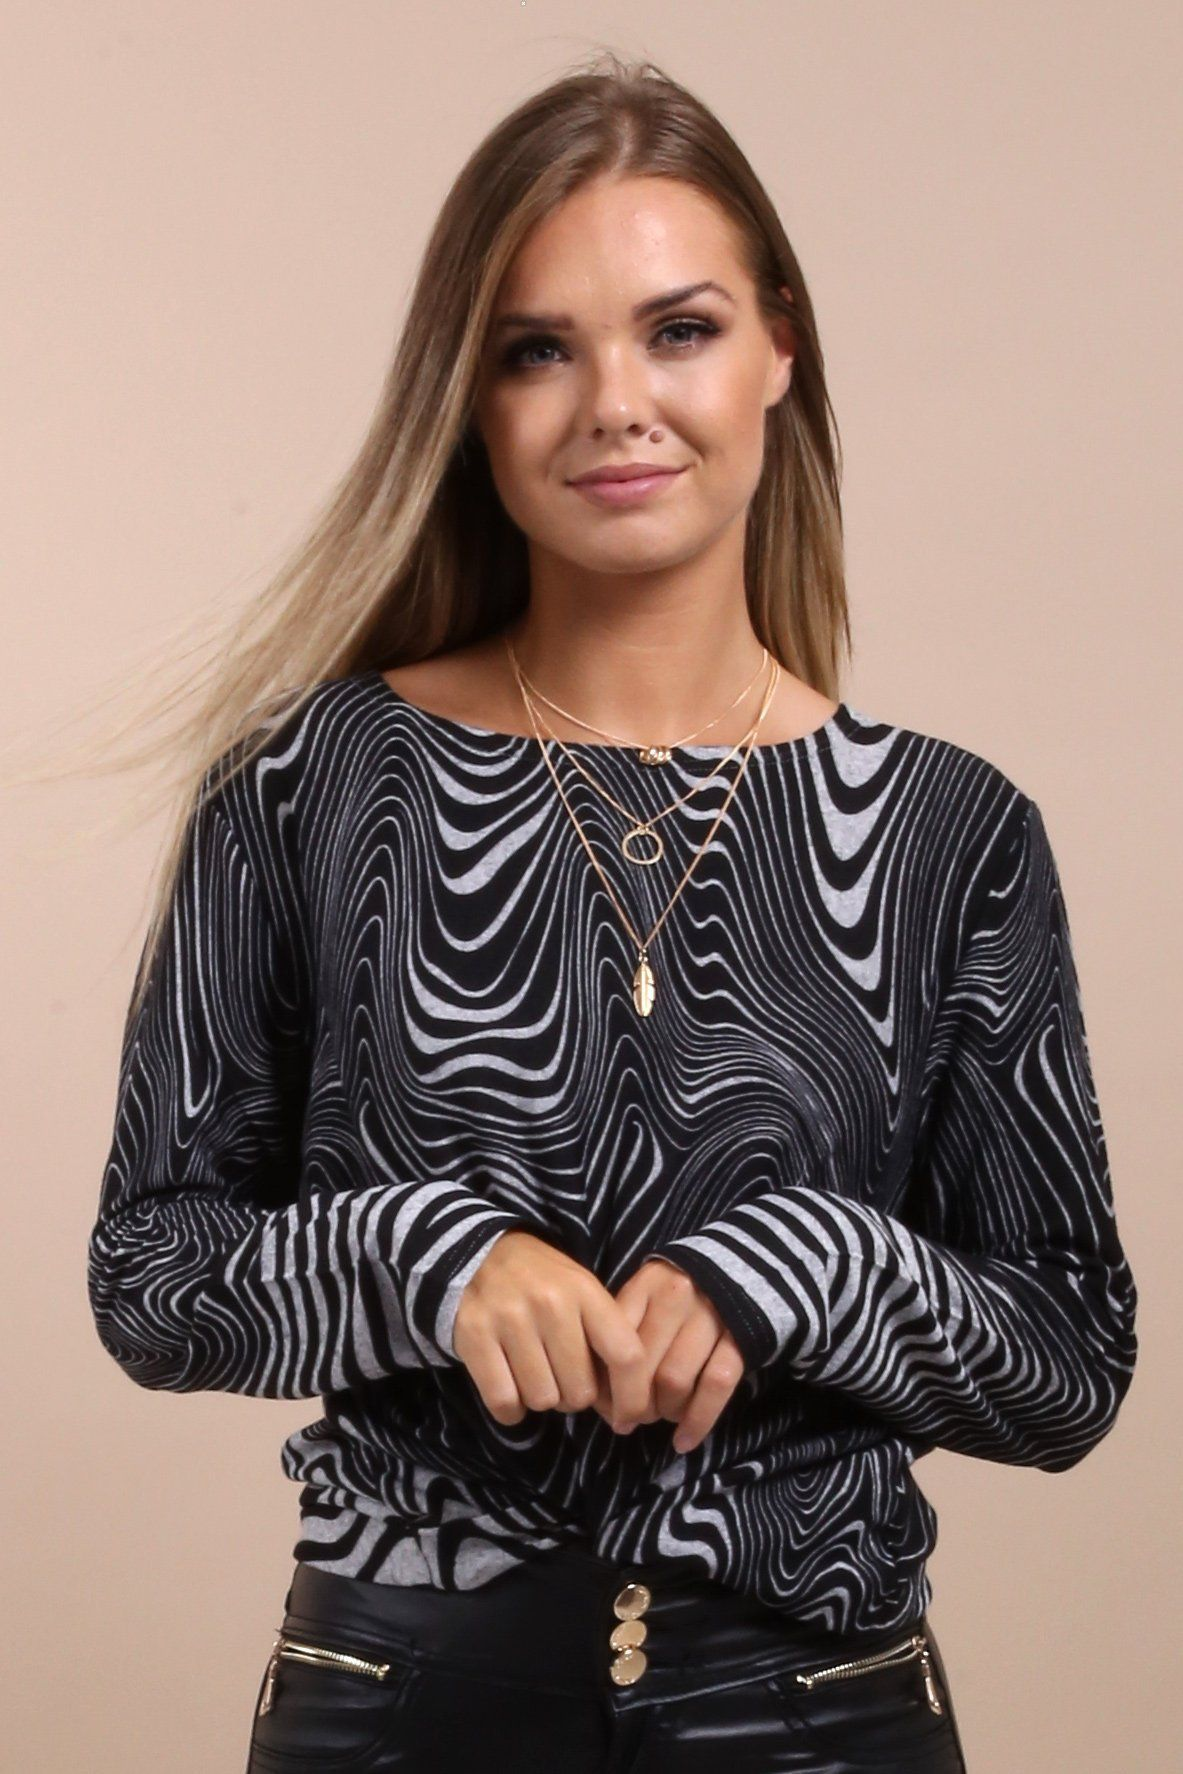 aedadaf8a57 Just gorgeous! I love this stunning black and grey abstract print top. It s  very